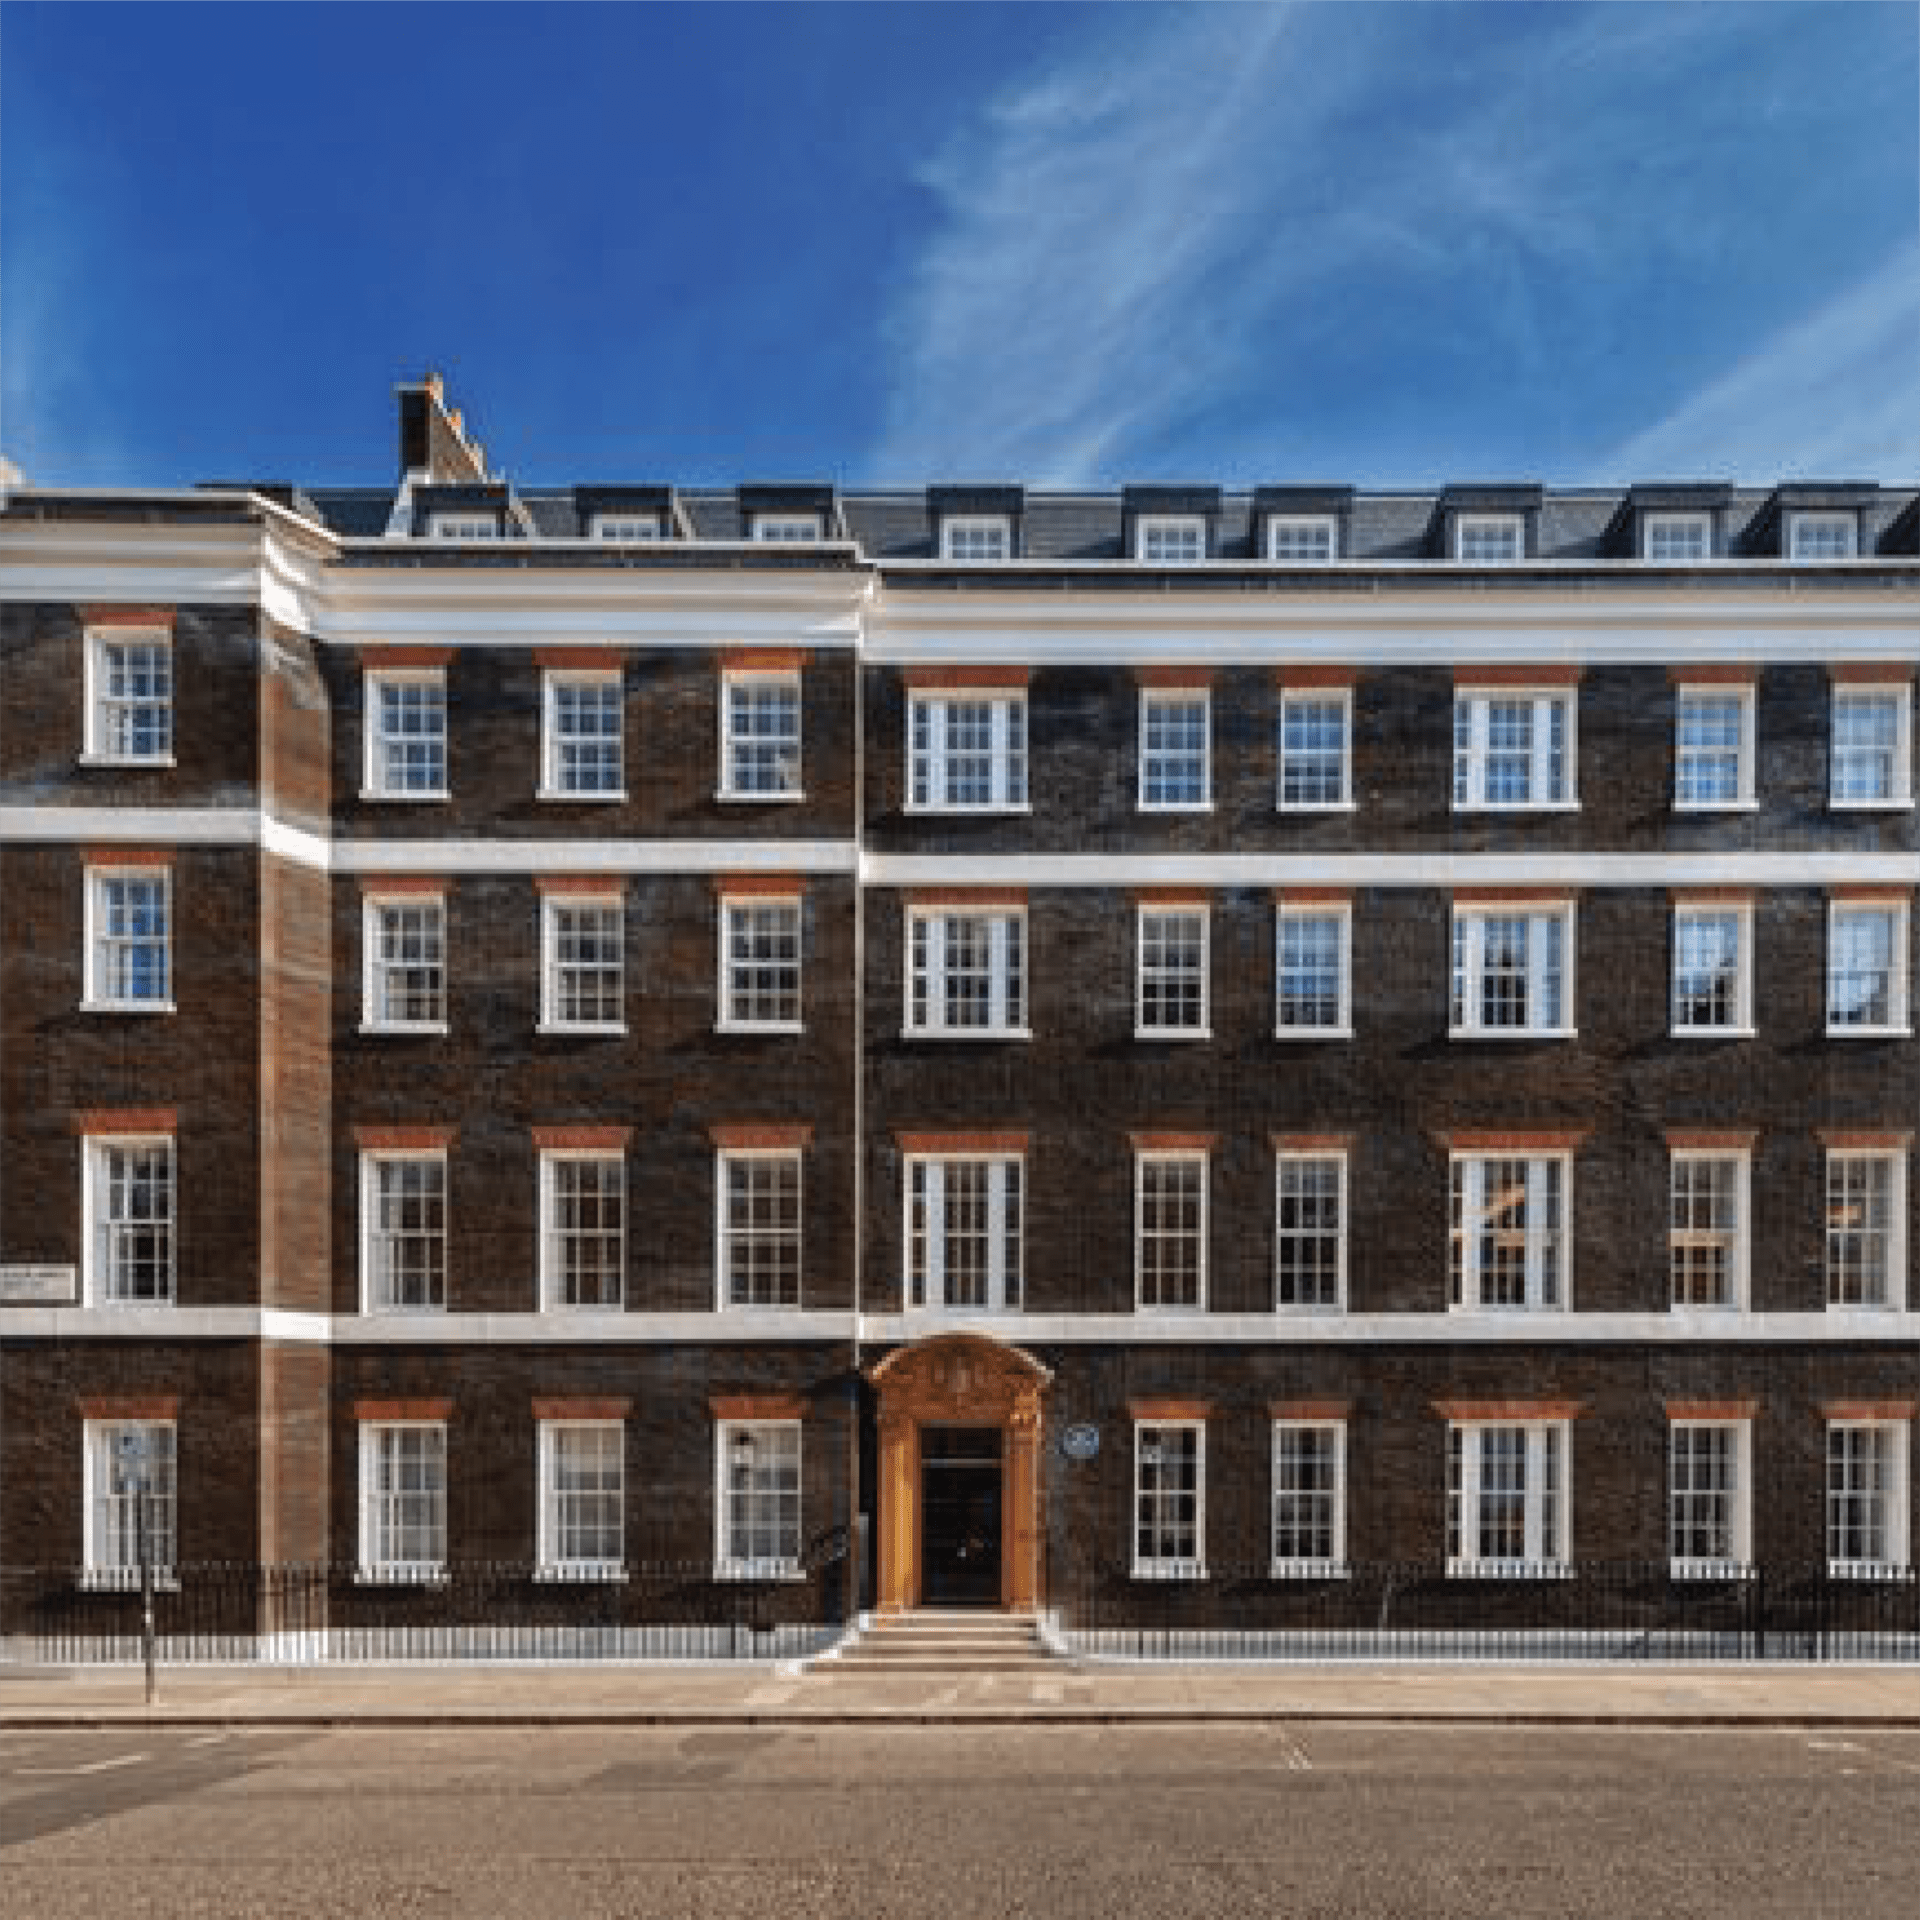 queens anne gate, london imist installed a fire suppression system in the residential flats and penthouse